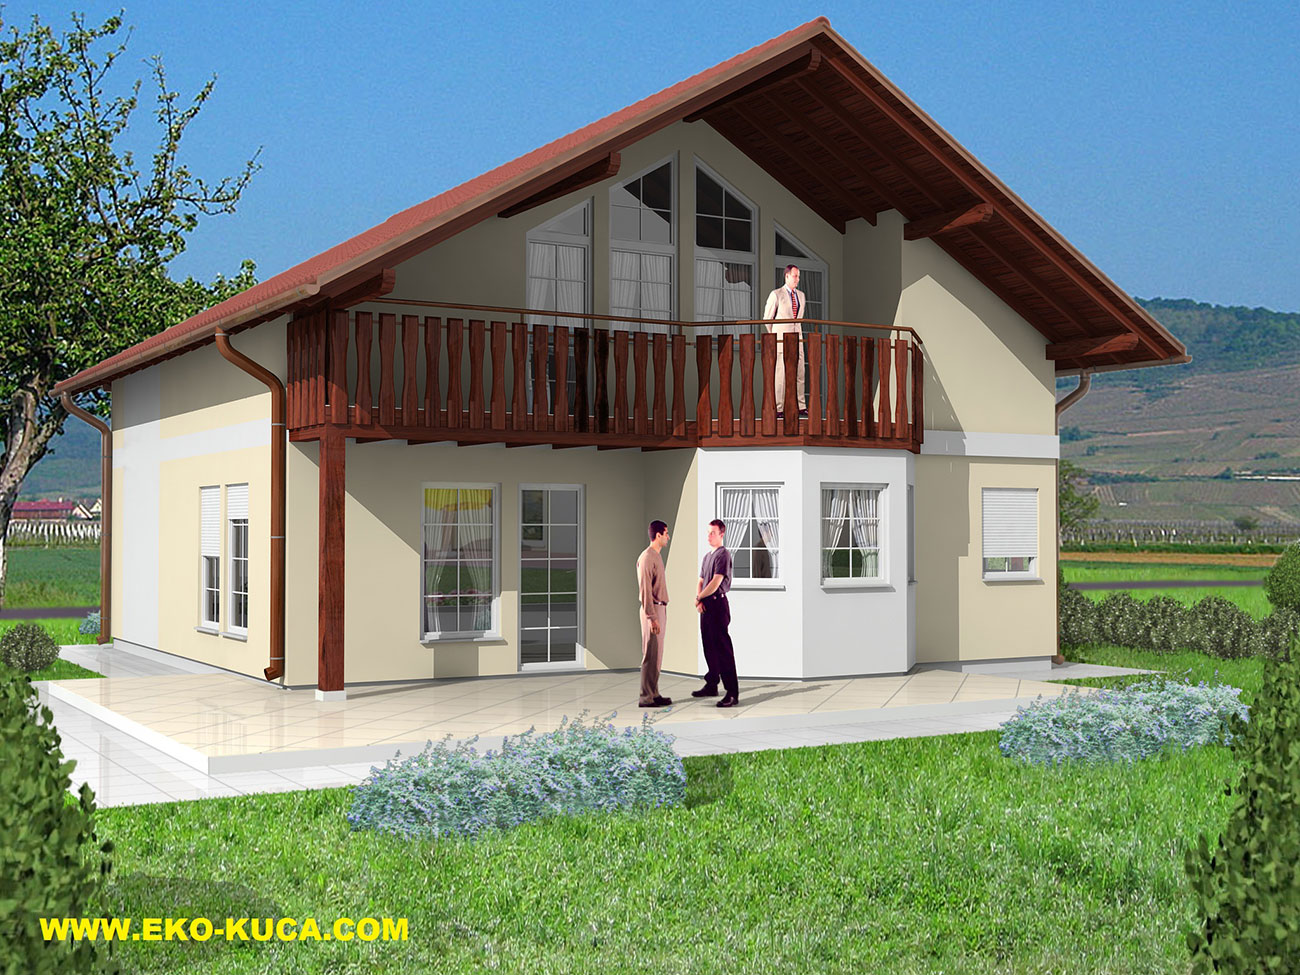 Prefabricated houses - Family 1